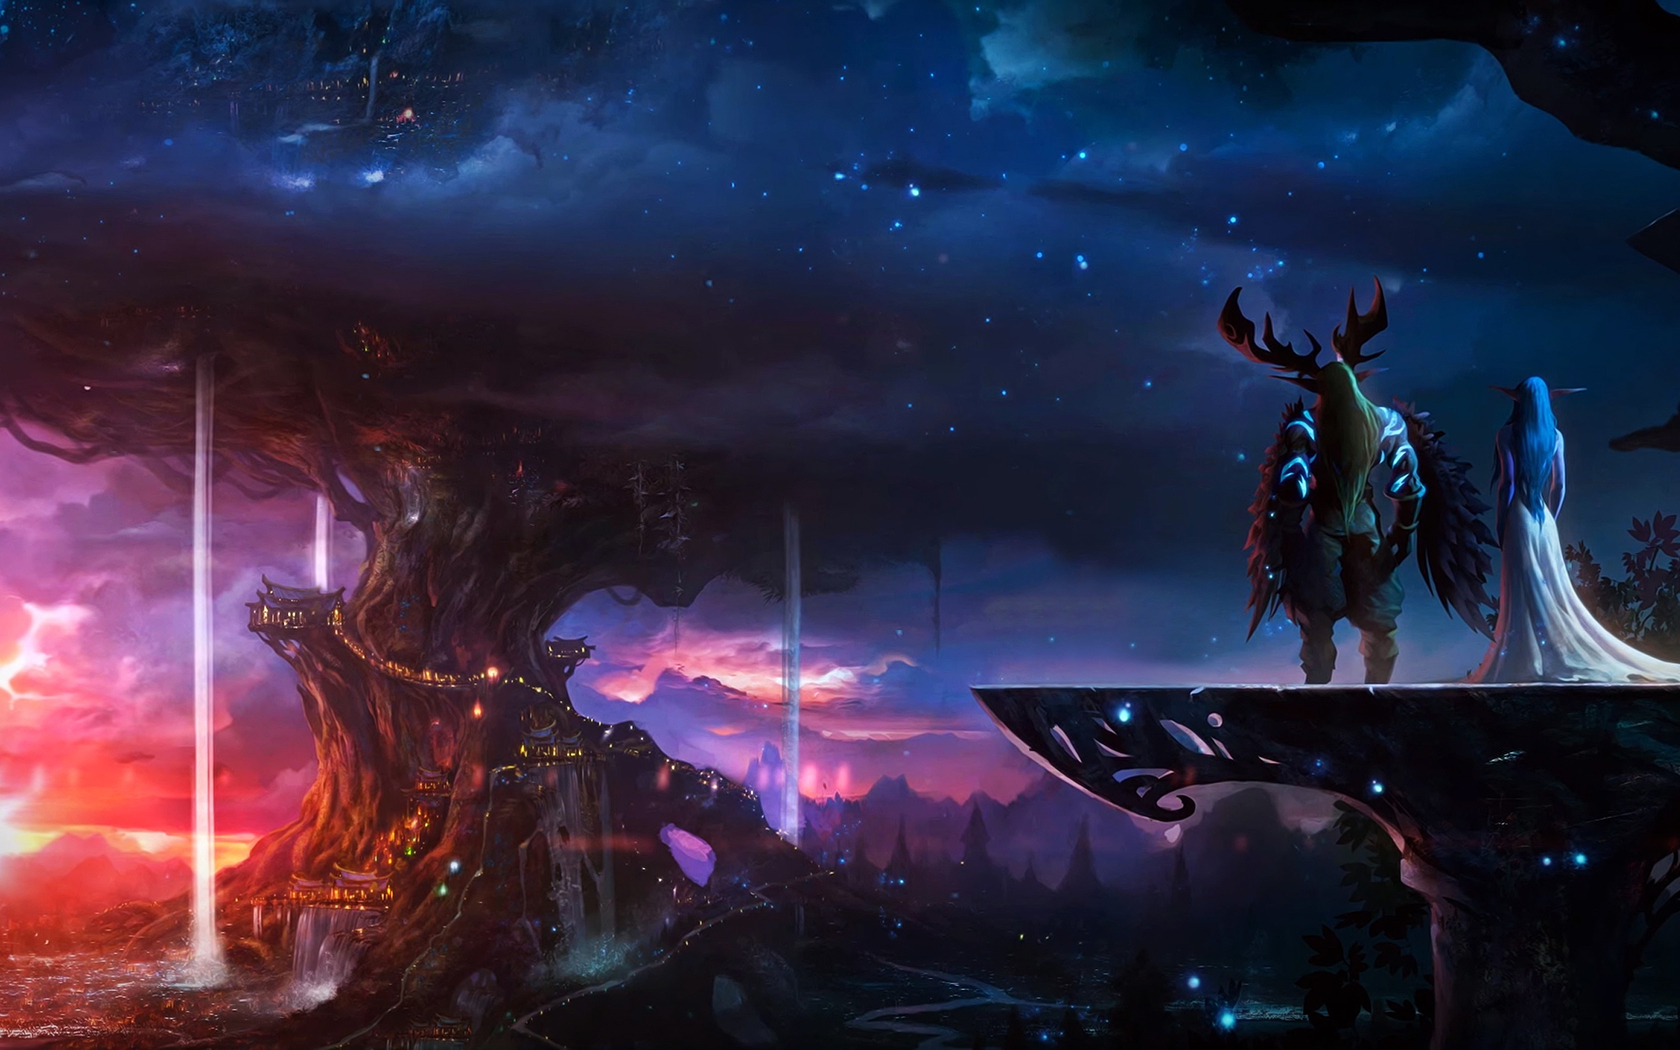 1680x1050 Elf And Knight World Of Warcraft 1680x1050 Resolution Hd